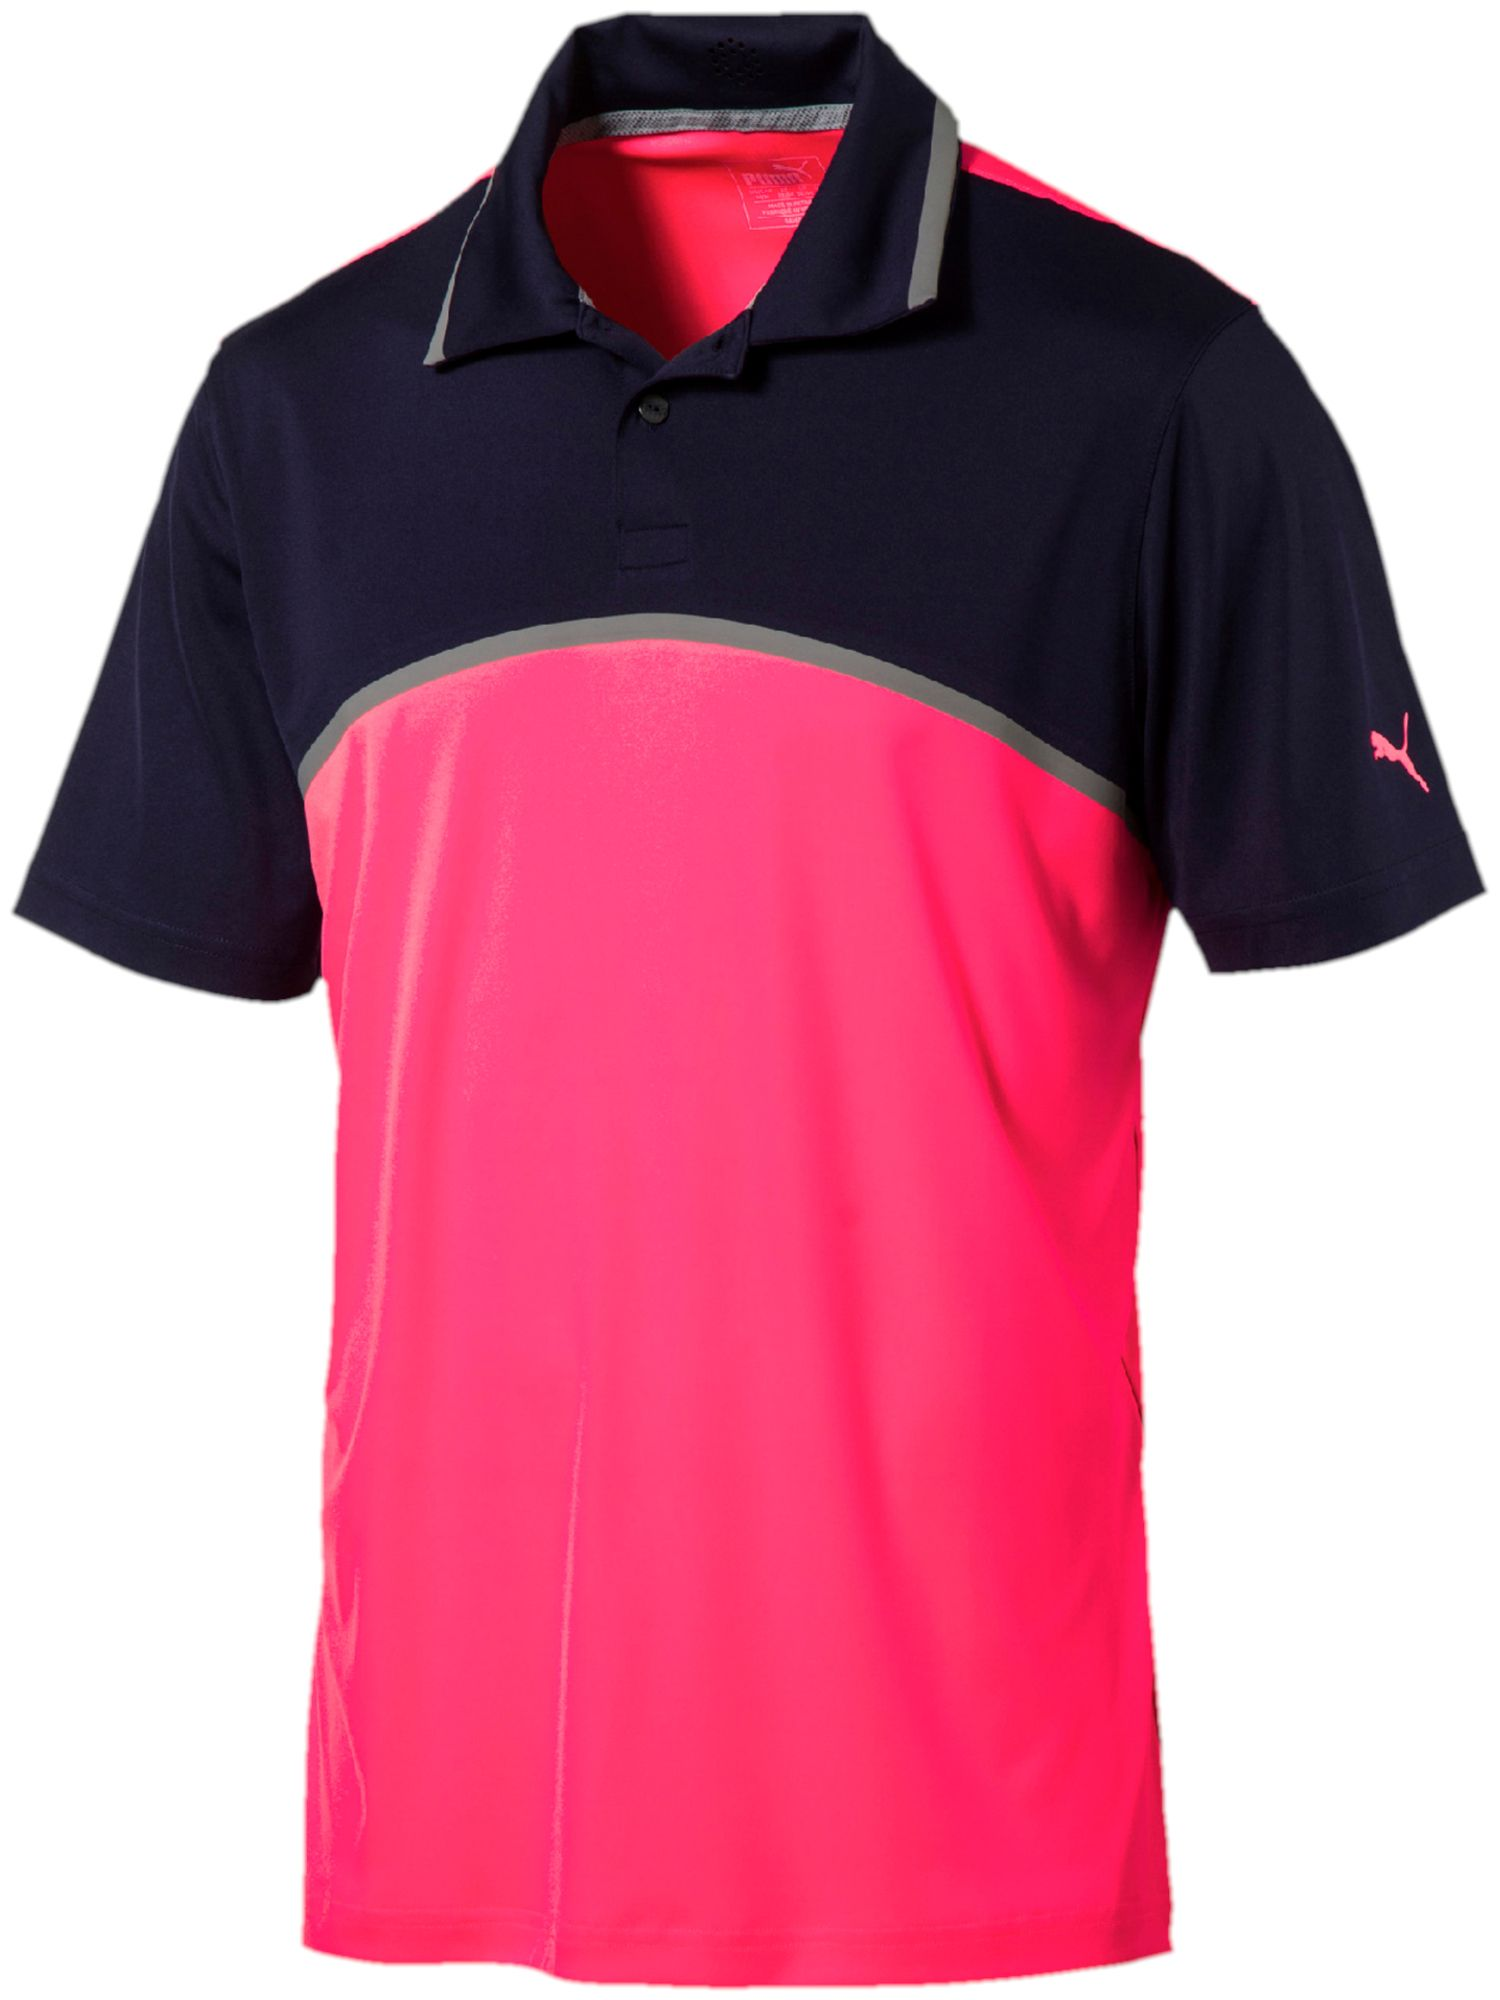 Men's Puma Tailored Colorblock Polo, Pink